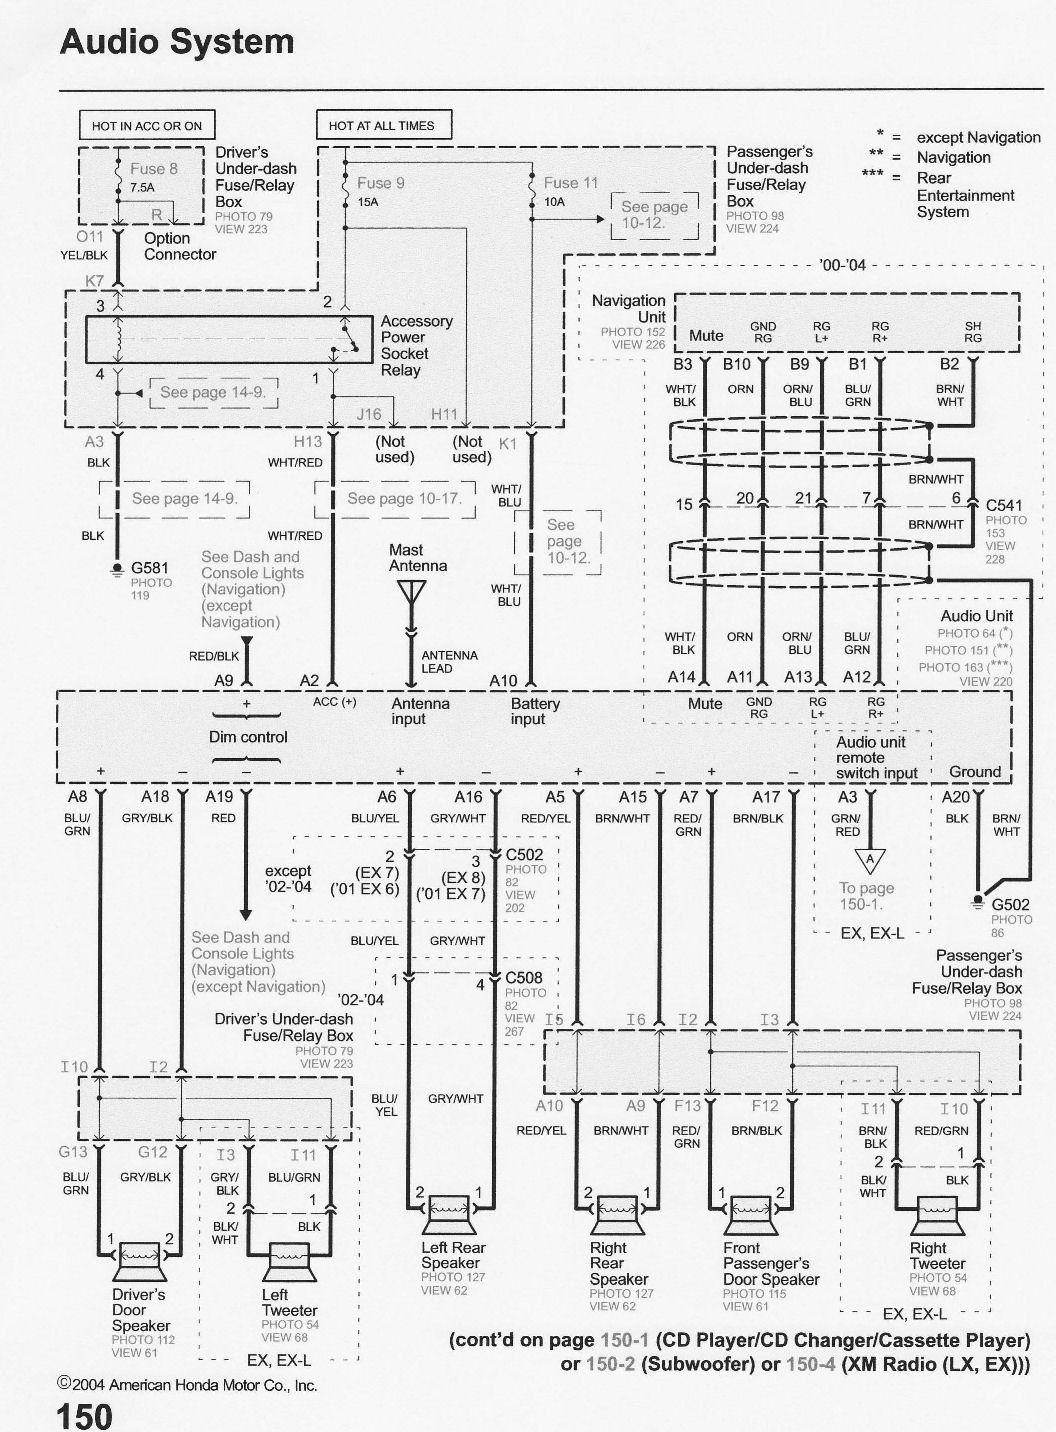 Honda Stereo Wiring Diagram from www.justanswer.com